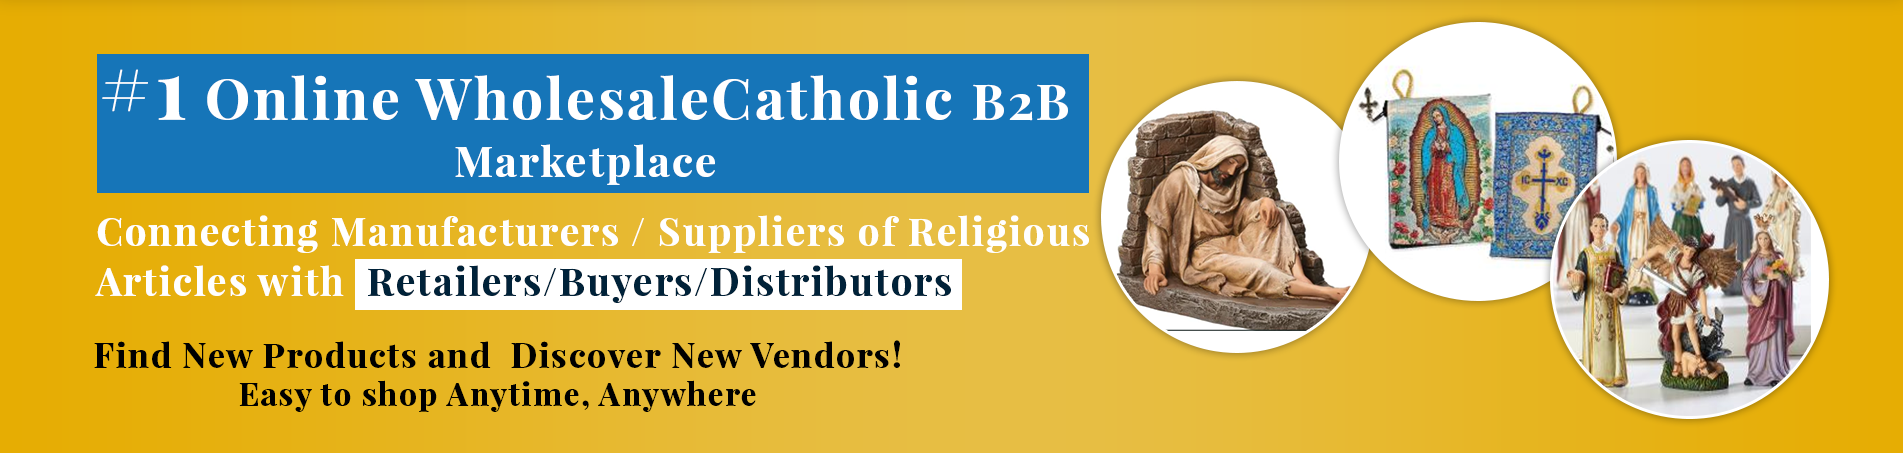 Catholic Marketing Banner Marketplace